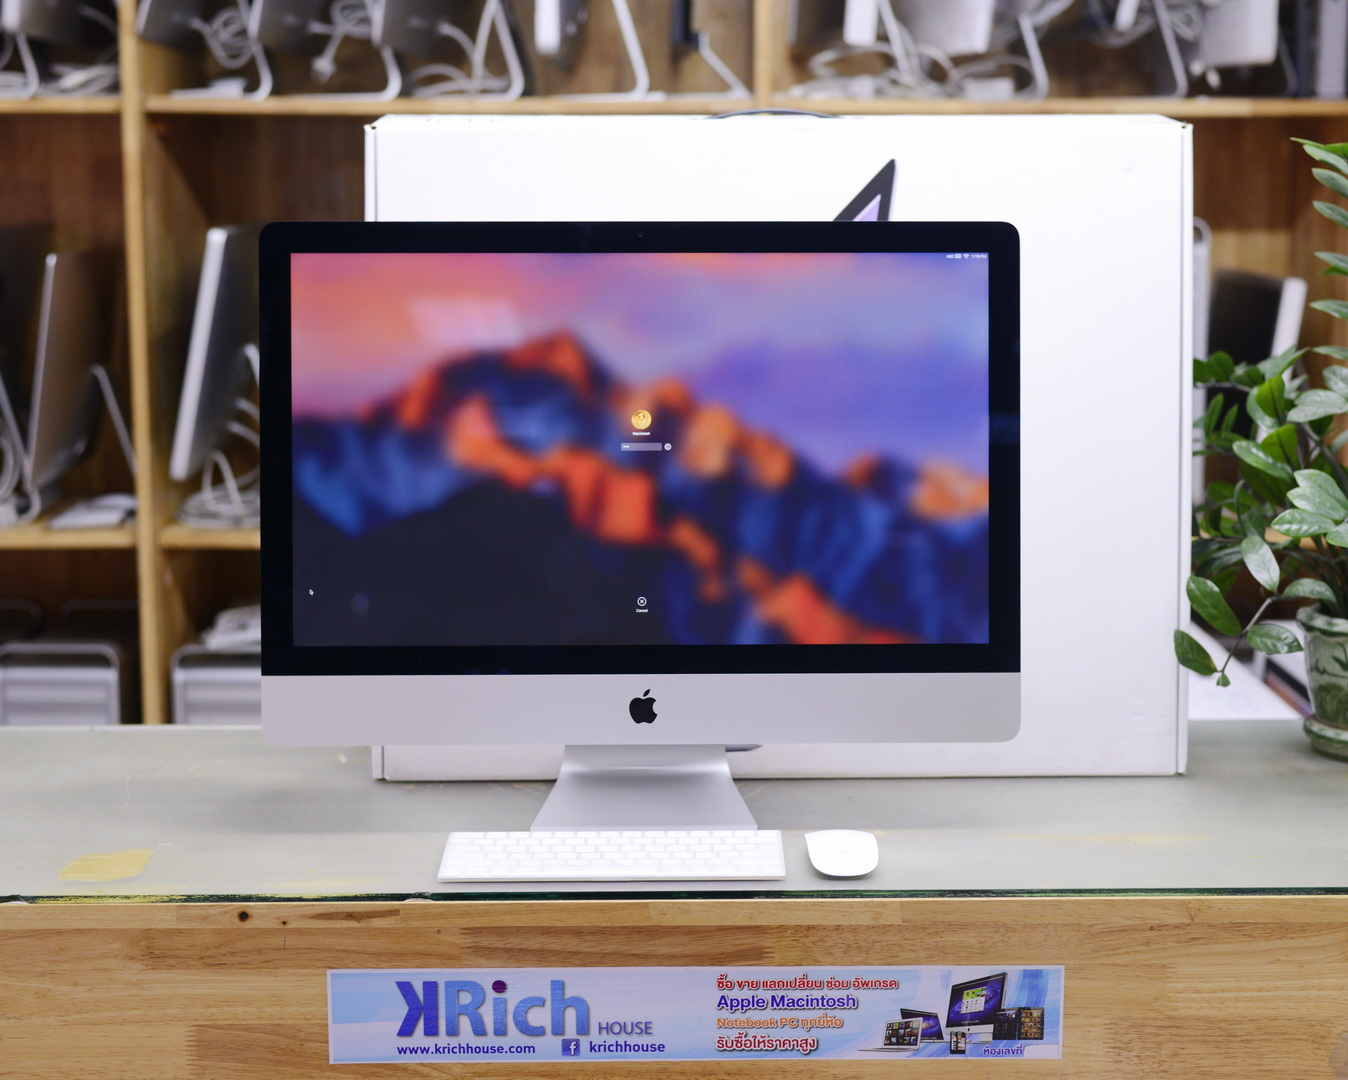 iMac 27-inch (Retina 5K, Late 2015) - Quad-Core i5 3.2GHz RAM 8GB HDD 1TB Fusion Drive AMD Radeon R9 M390 2GB - Fullbox